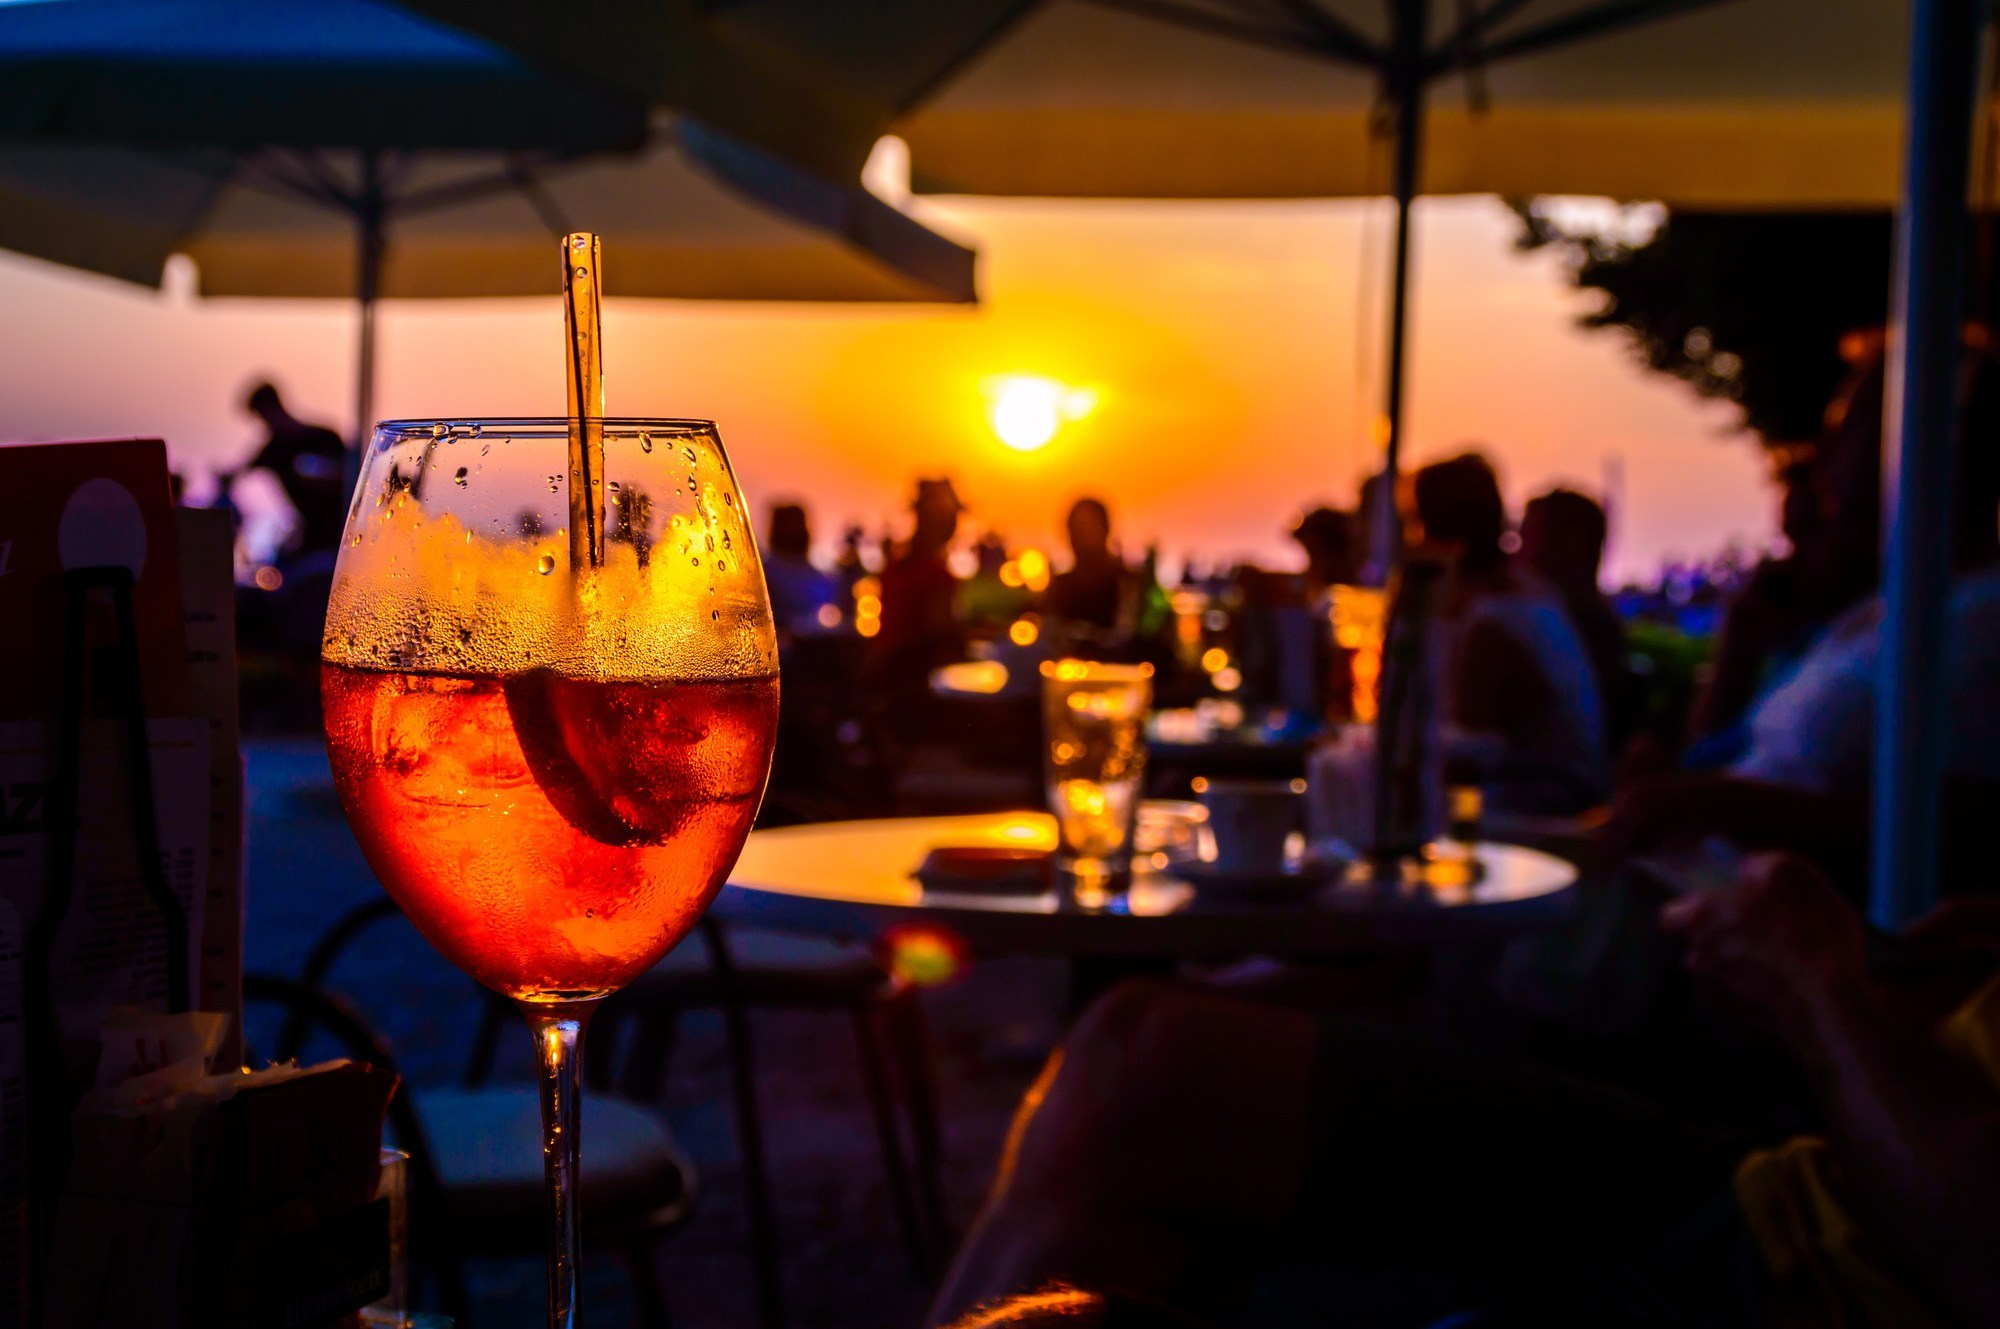 A glass of cold orange cocktail at the sunset on the table of a beach bar at the sunset, with blurry people arround having refreshements or partying on a summer evening, with copy space for text